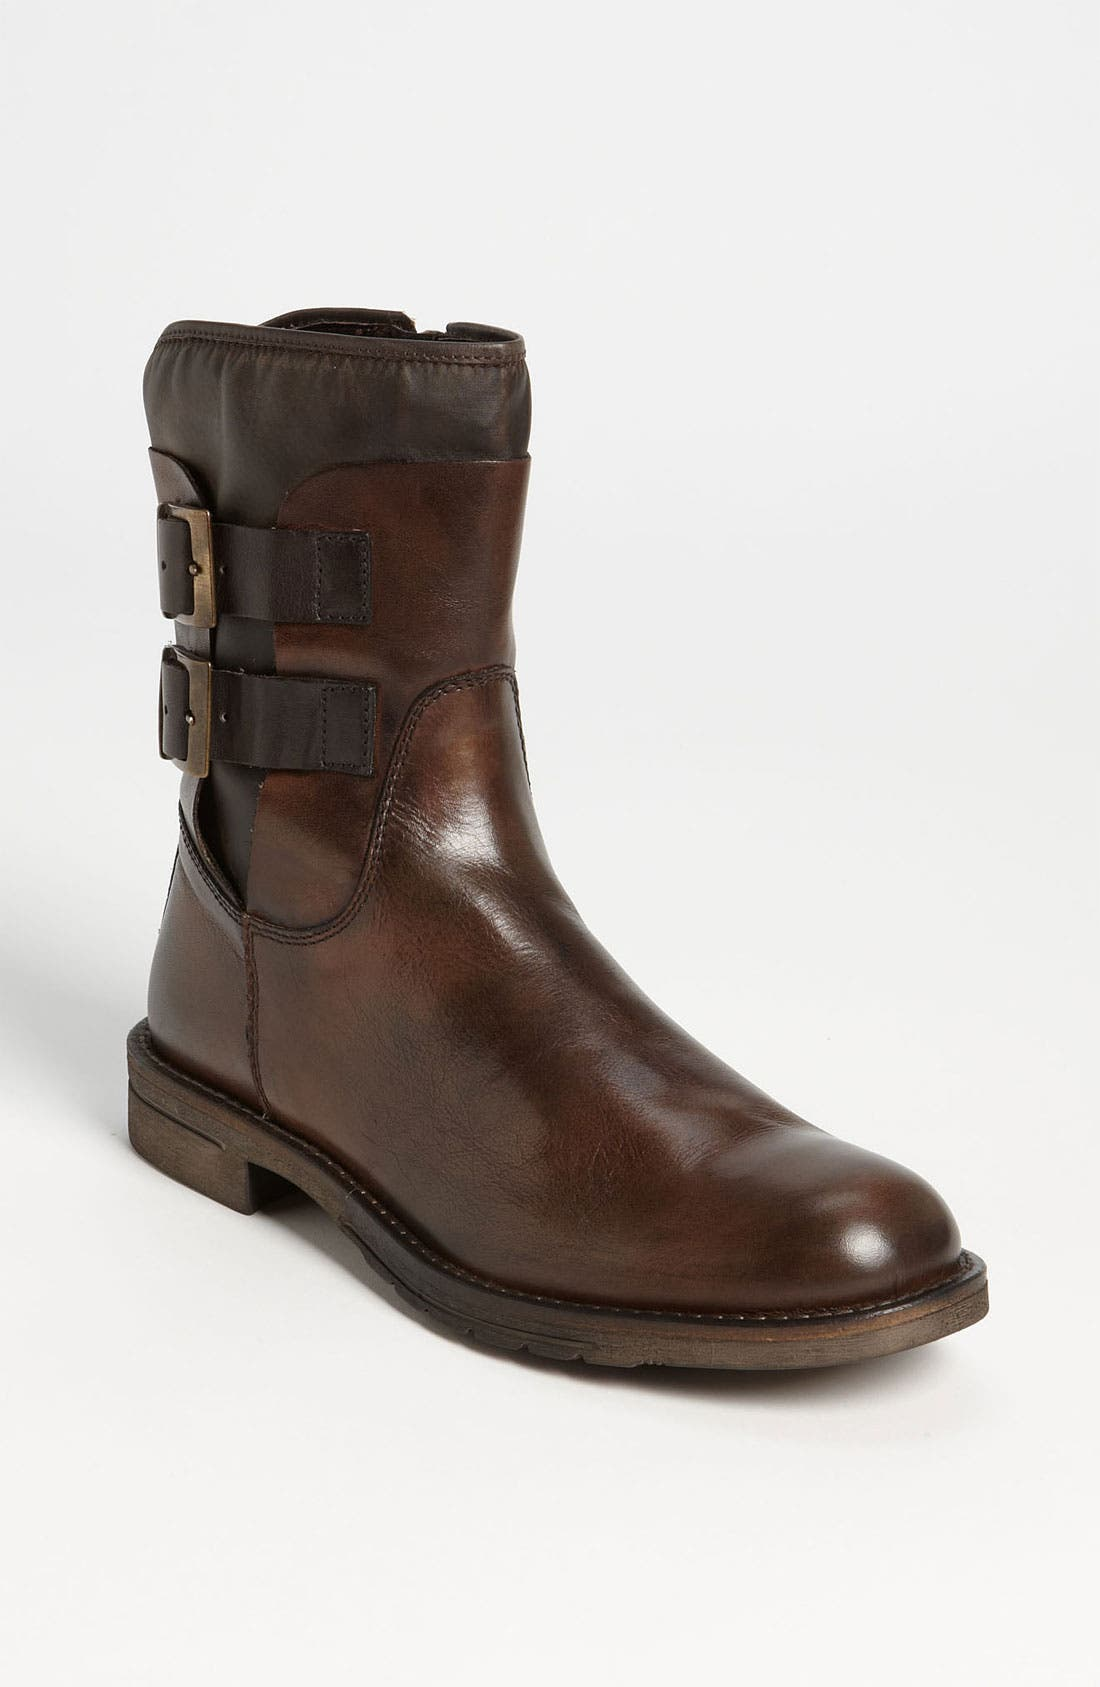 Alternate Image 1 Selected - Bacco Bucci 'Dunston' Boot